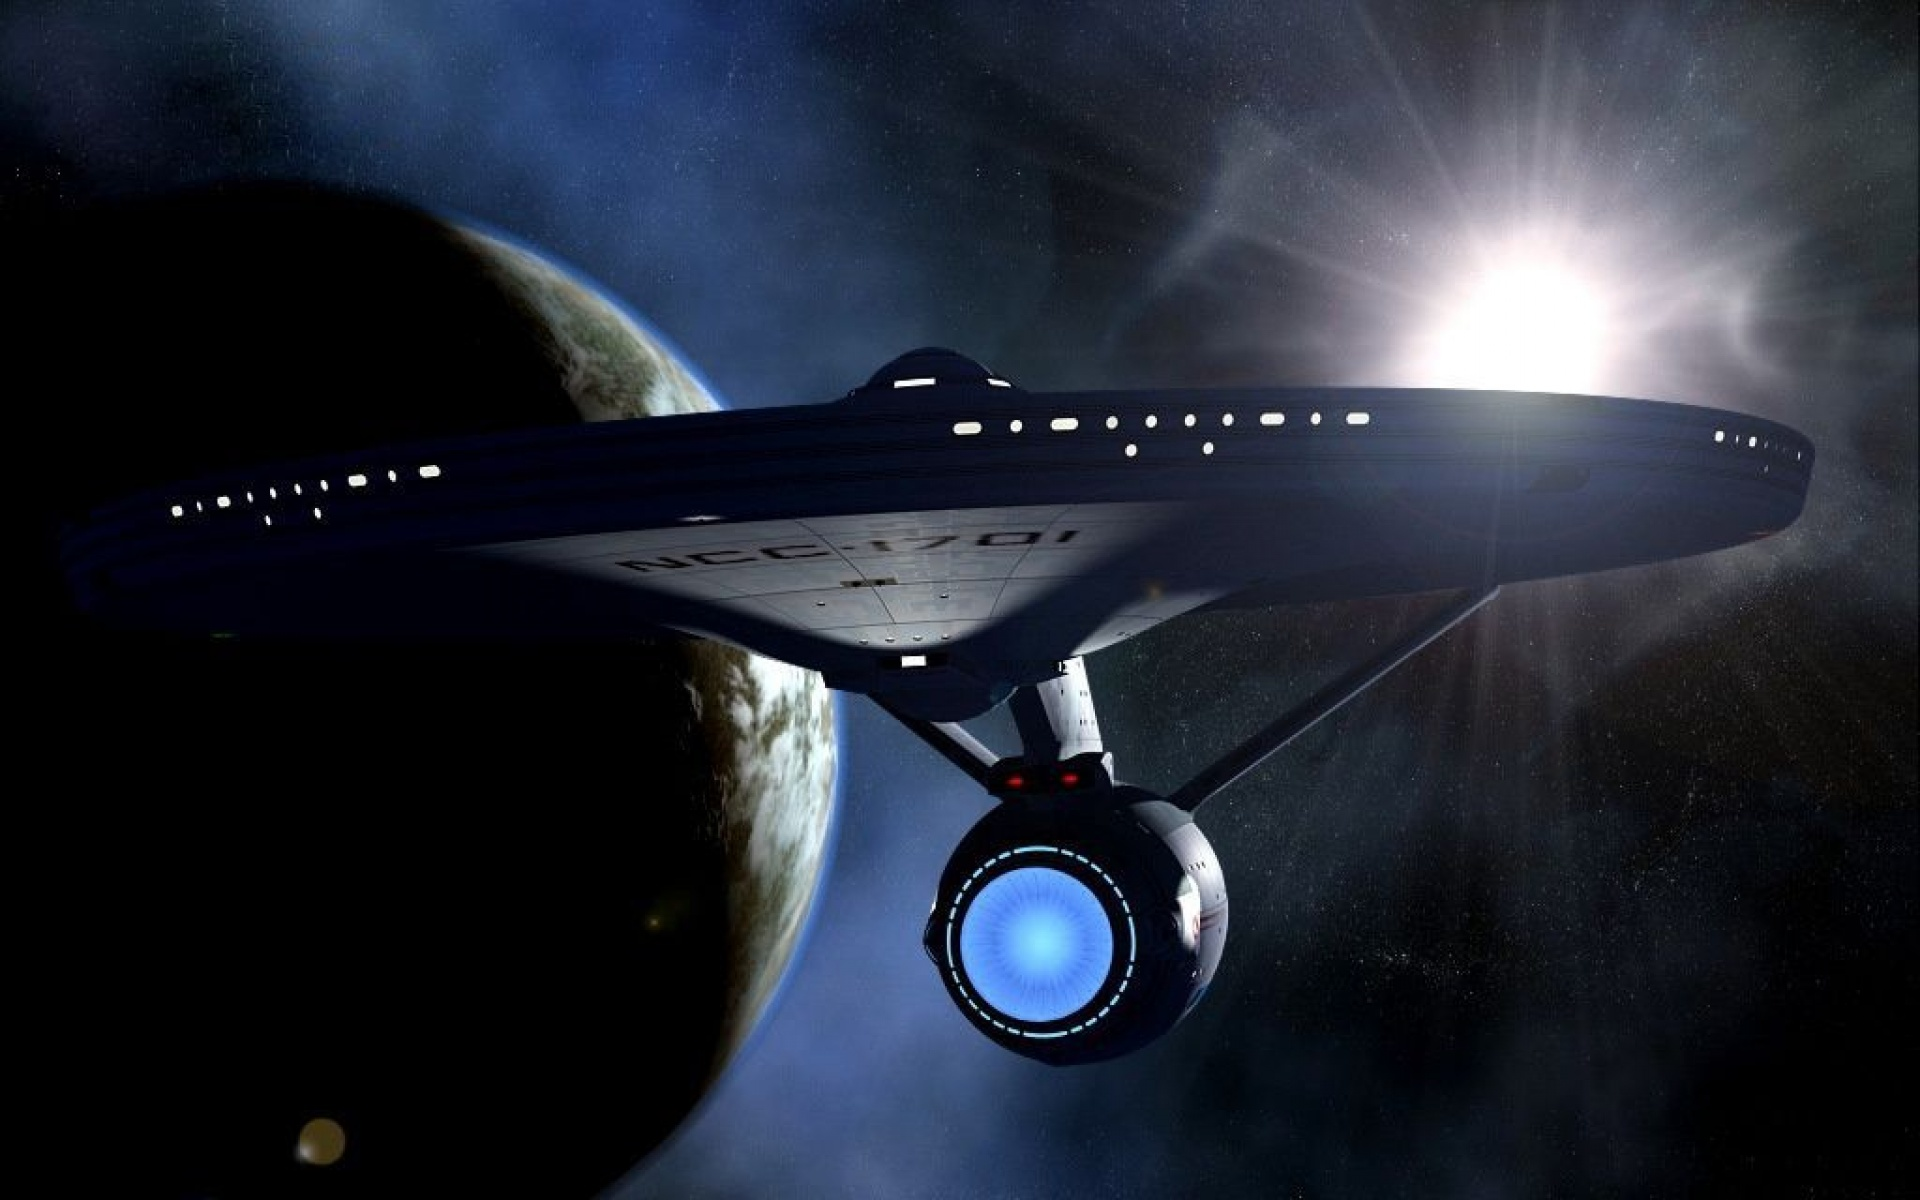 Star Trek Wallpaper 1920x1200 Star trek online wallpaper 1920x1200